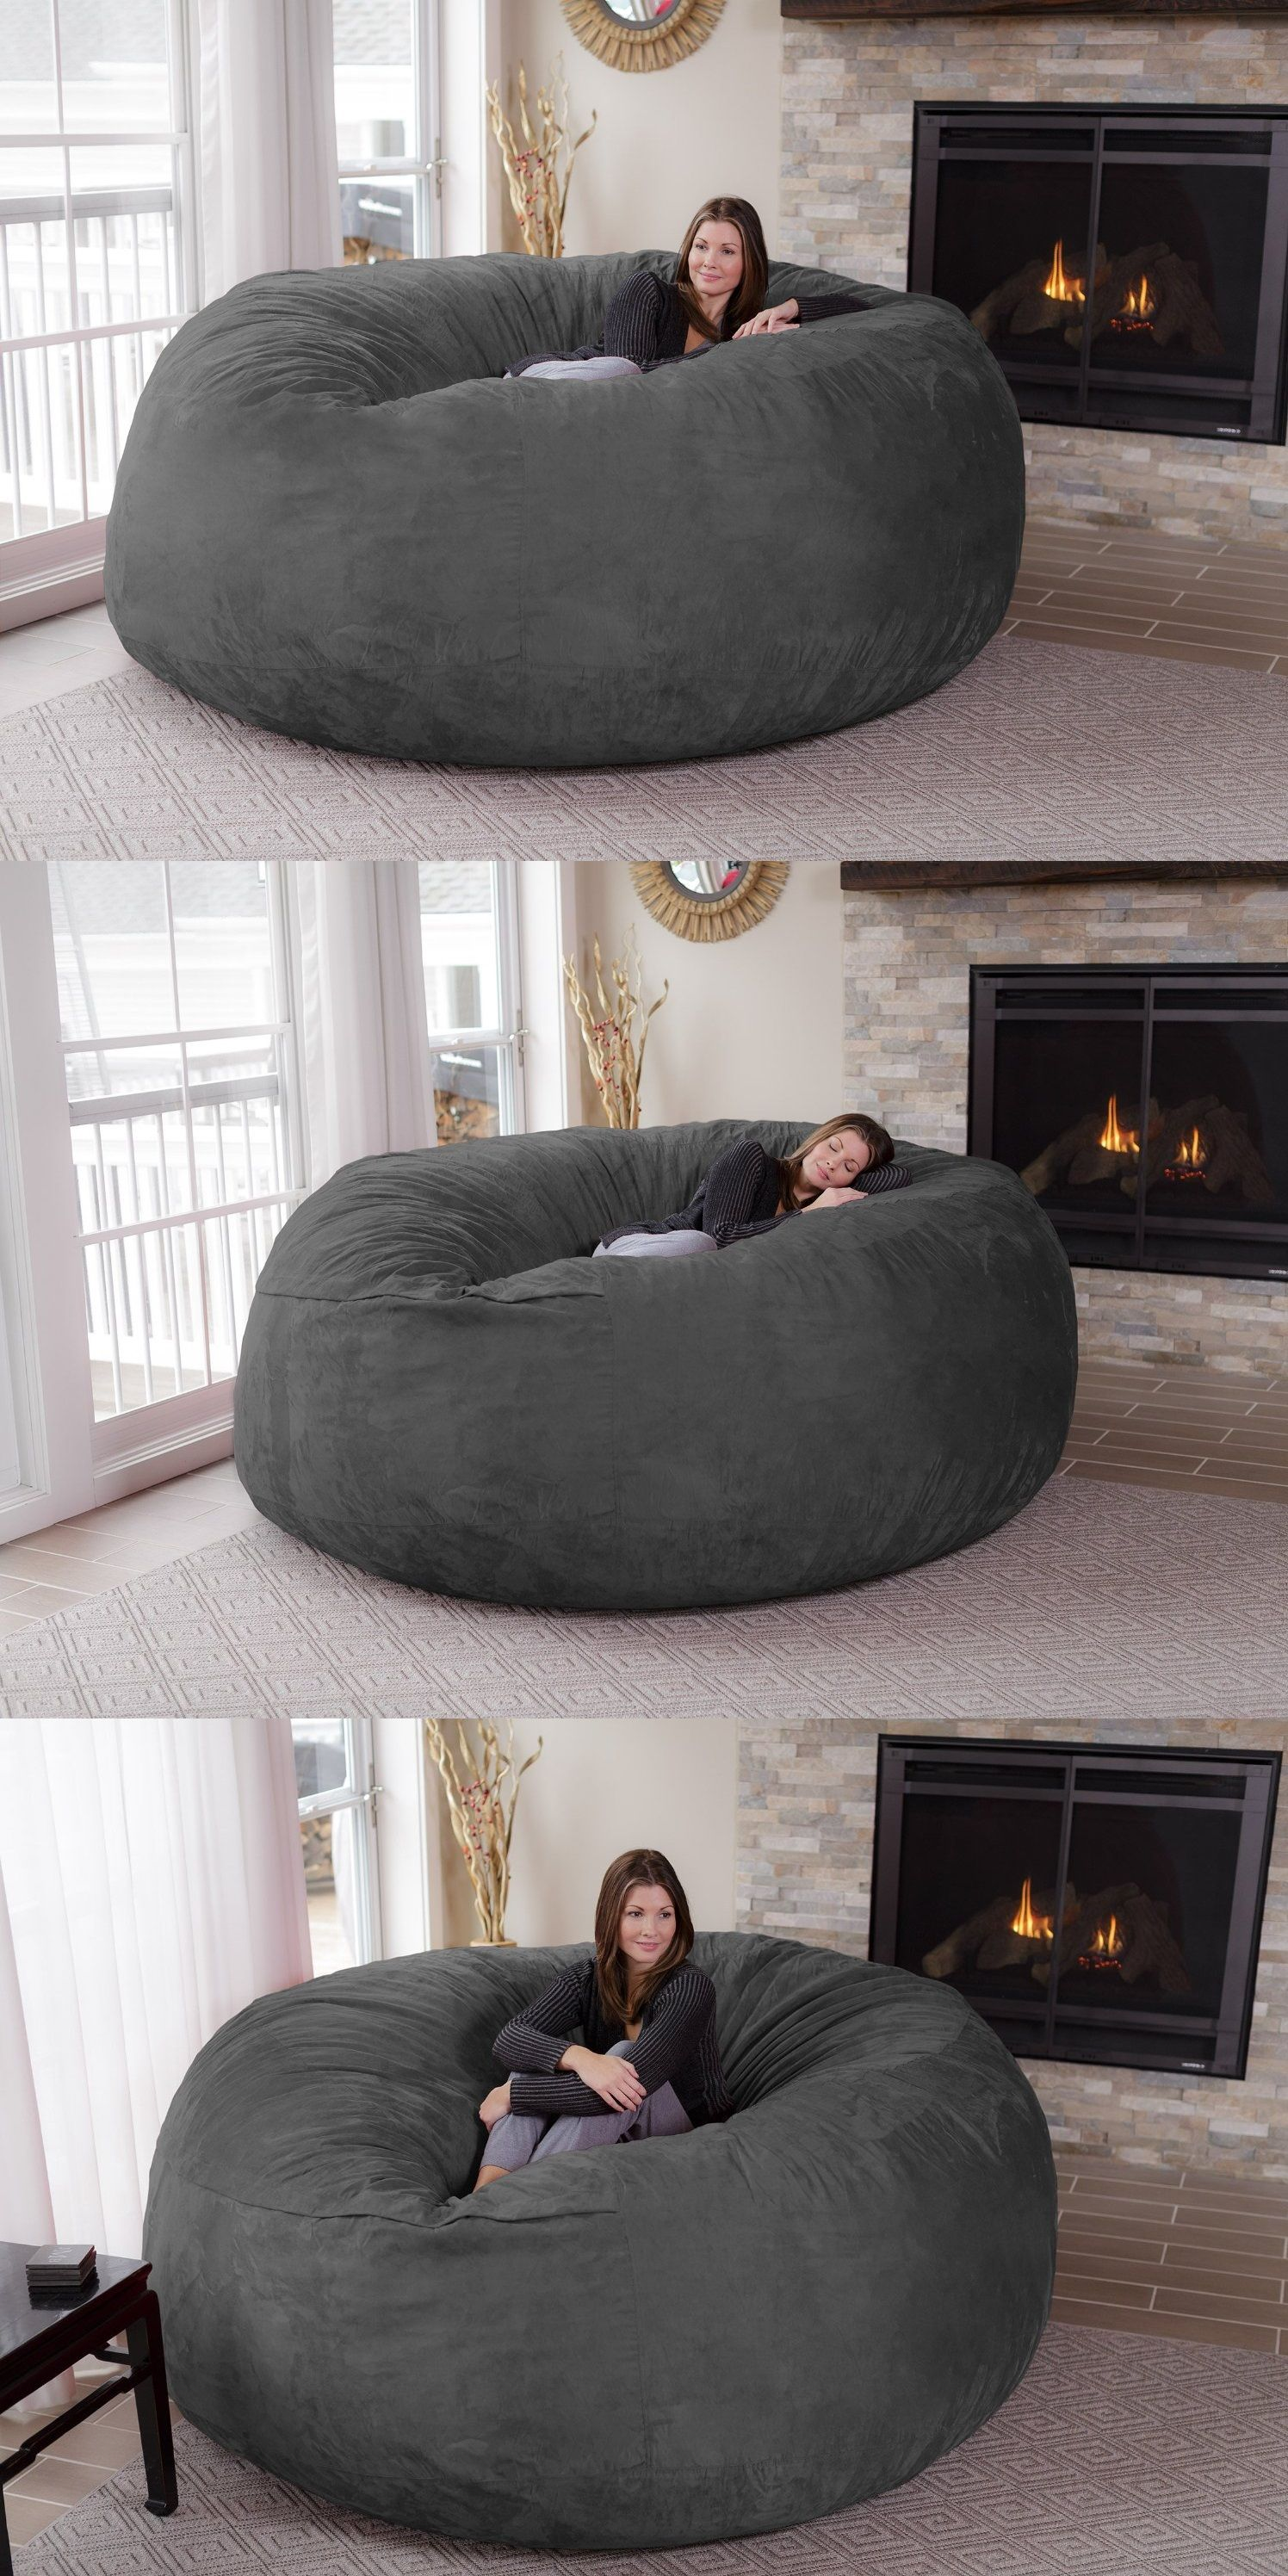 Jumbo Möbel Discount Jumbo Bean Bag Chair Home Decor Bean Bag Chair Bedroom Decor